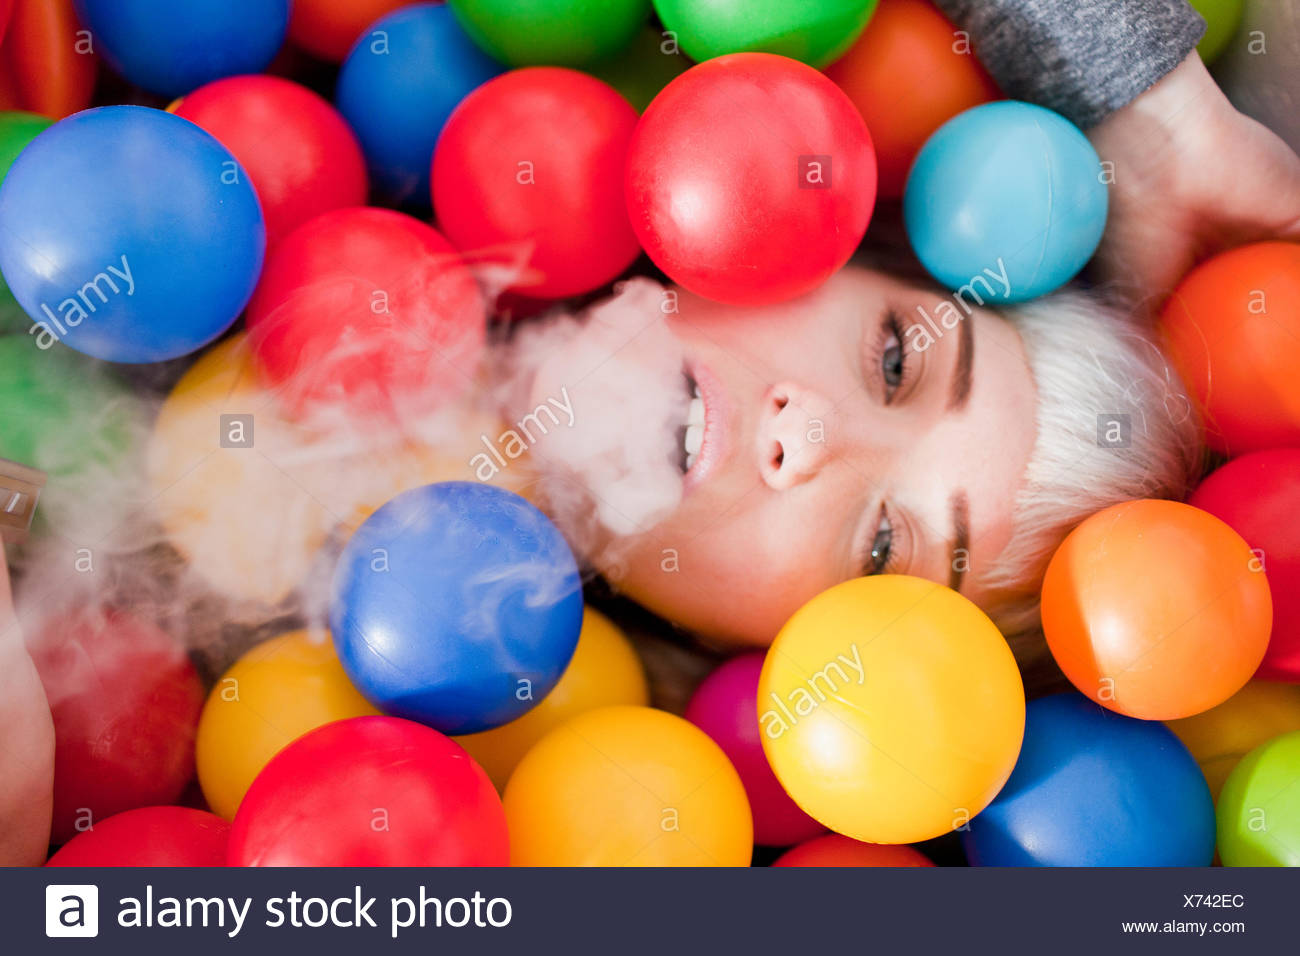 Ball Pit Stock Photos Amp Ball Pit Stock Images Alamy